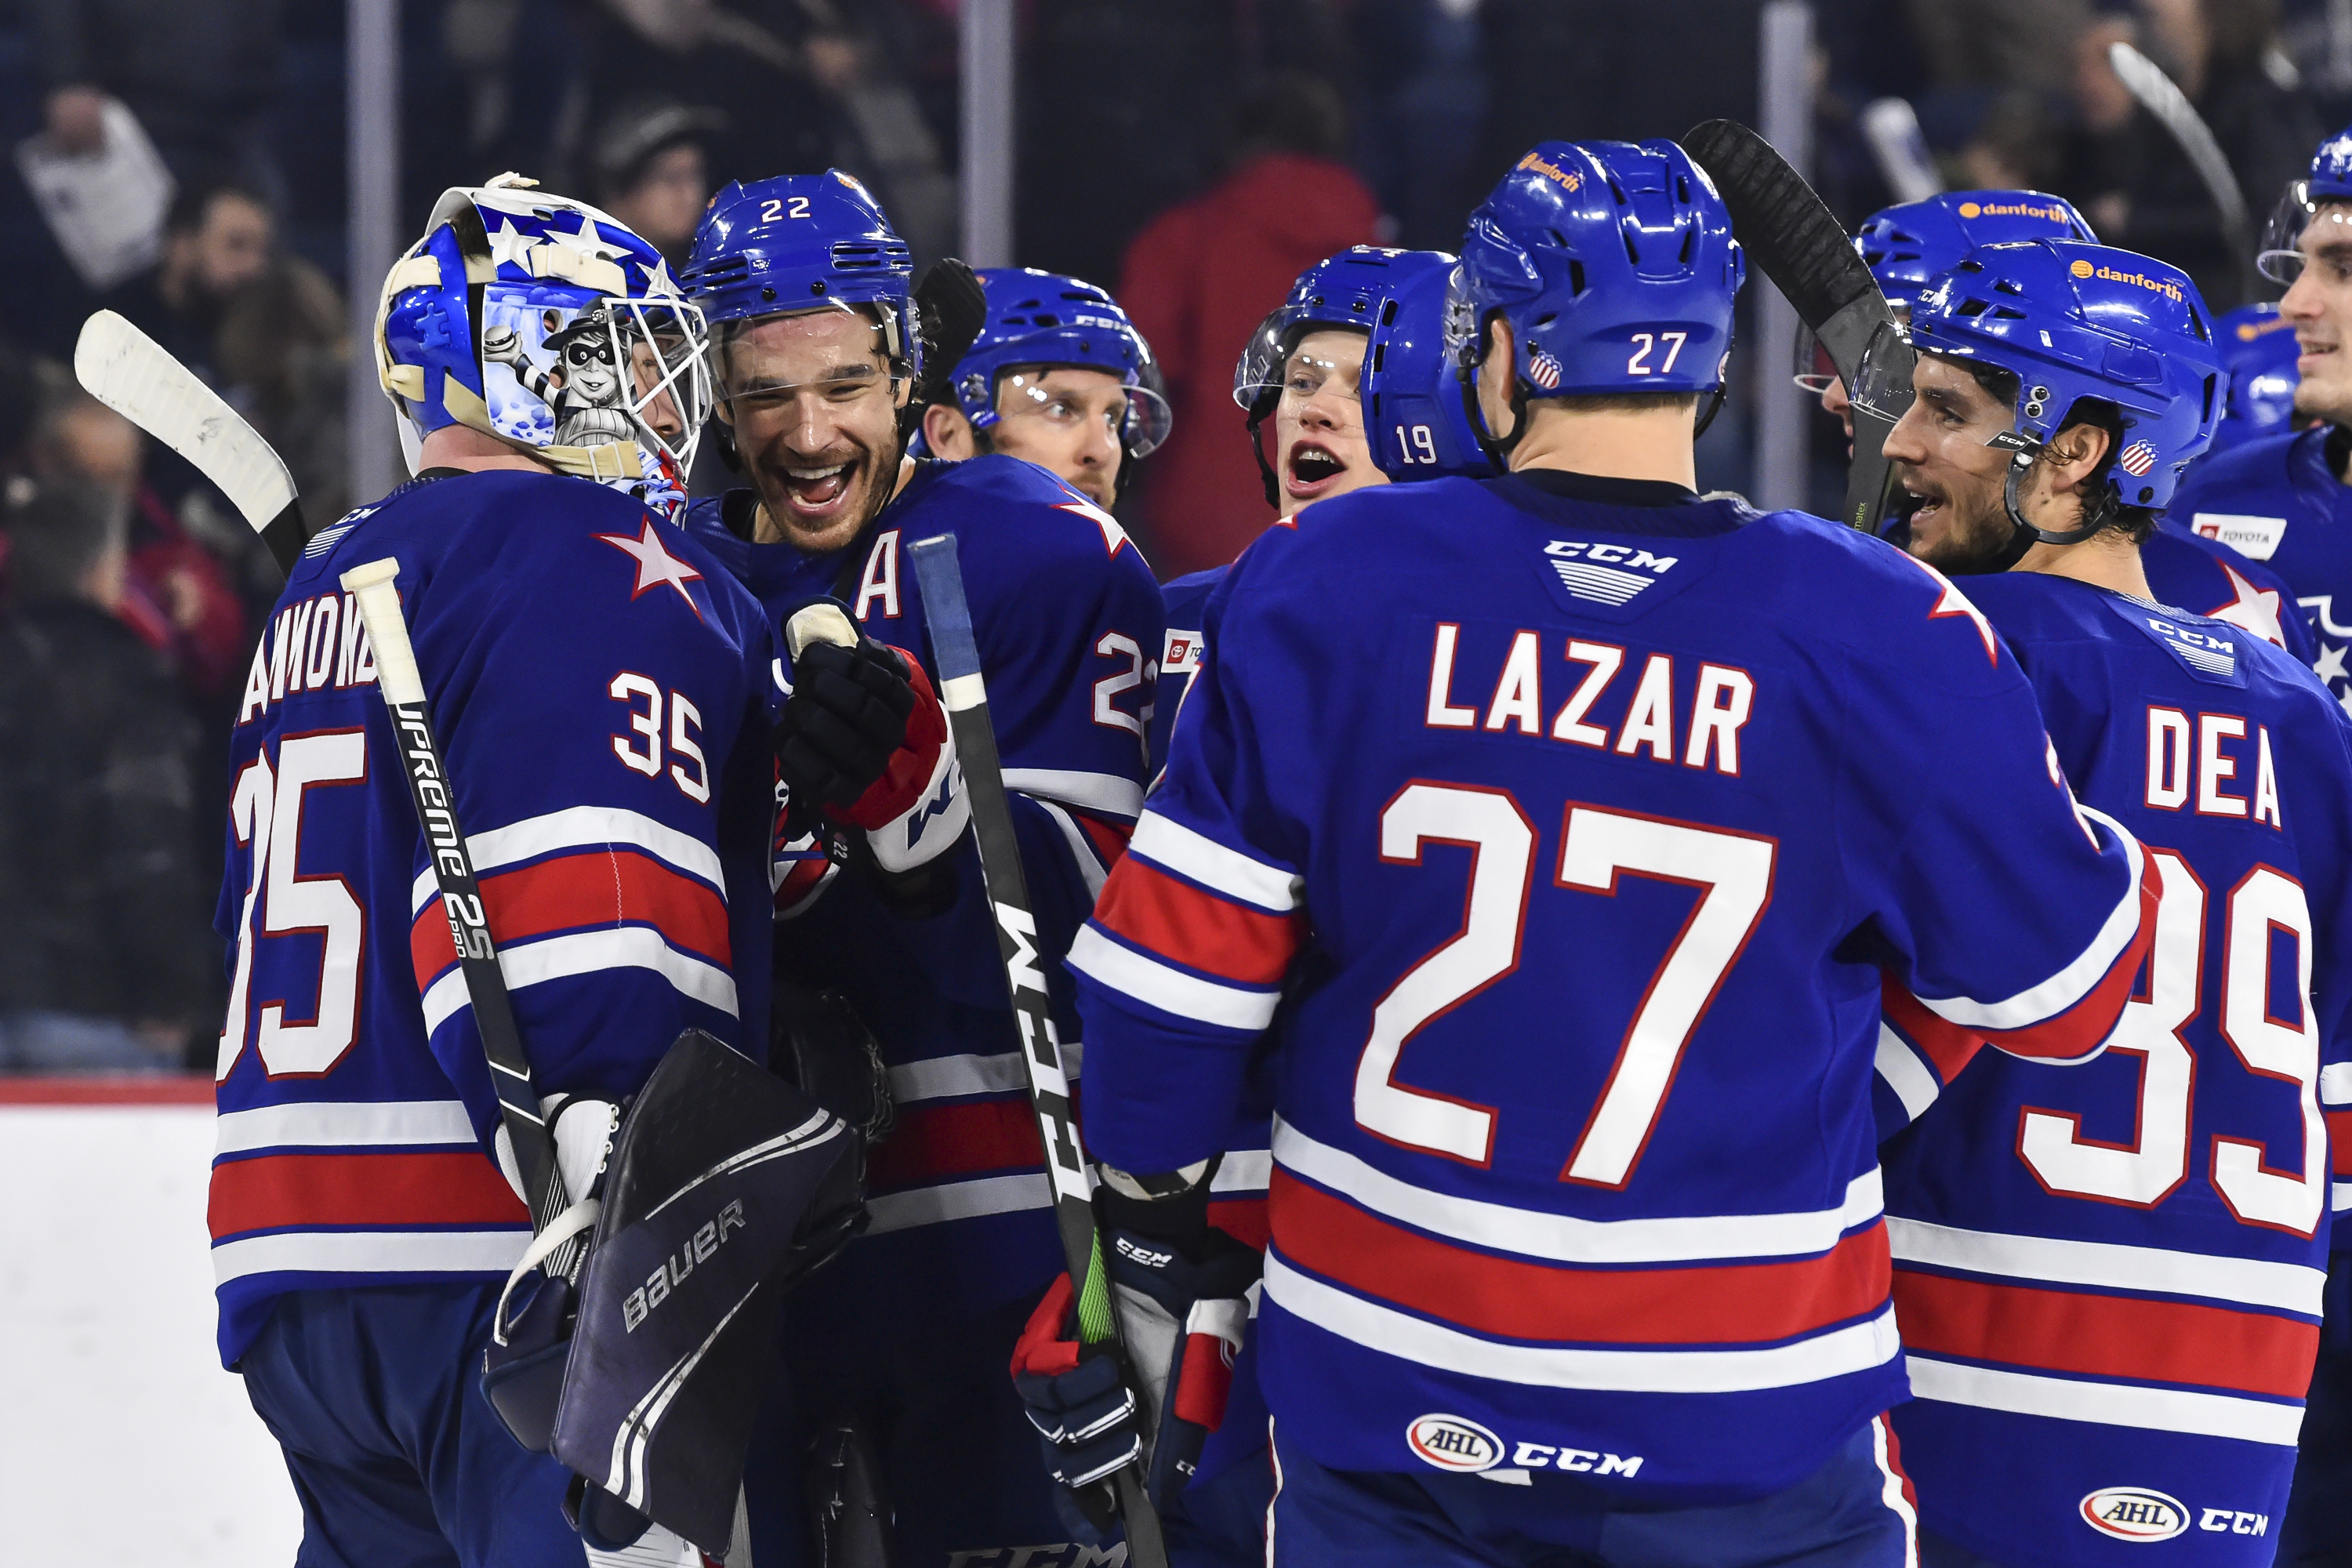 Amerks complete sweep with 5-0 win in Laval